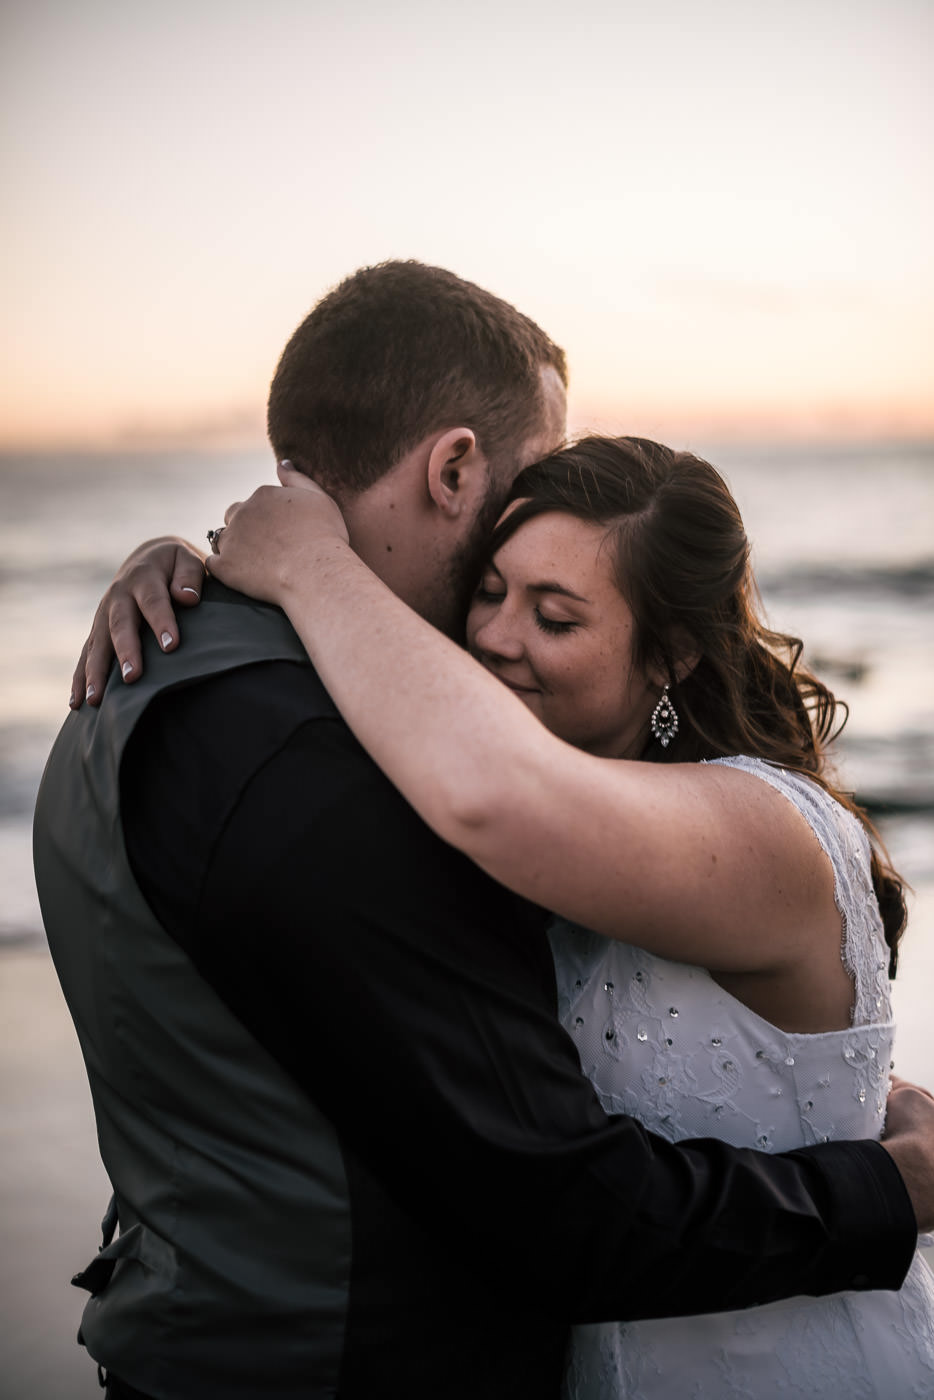 Romantic wedding photography by Fifth Photography in Laguna Beach.